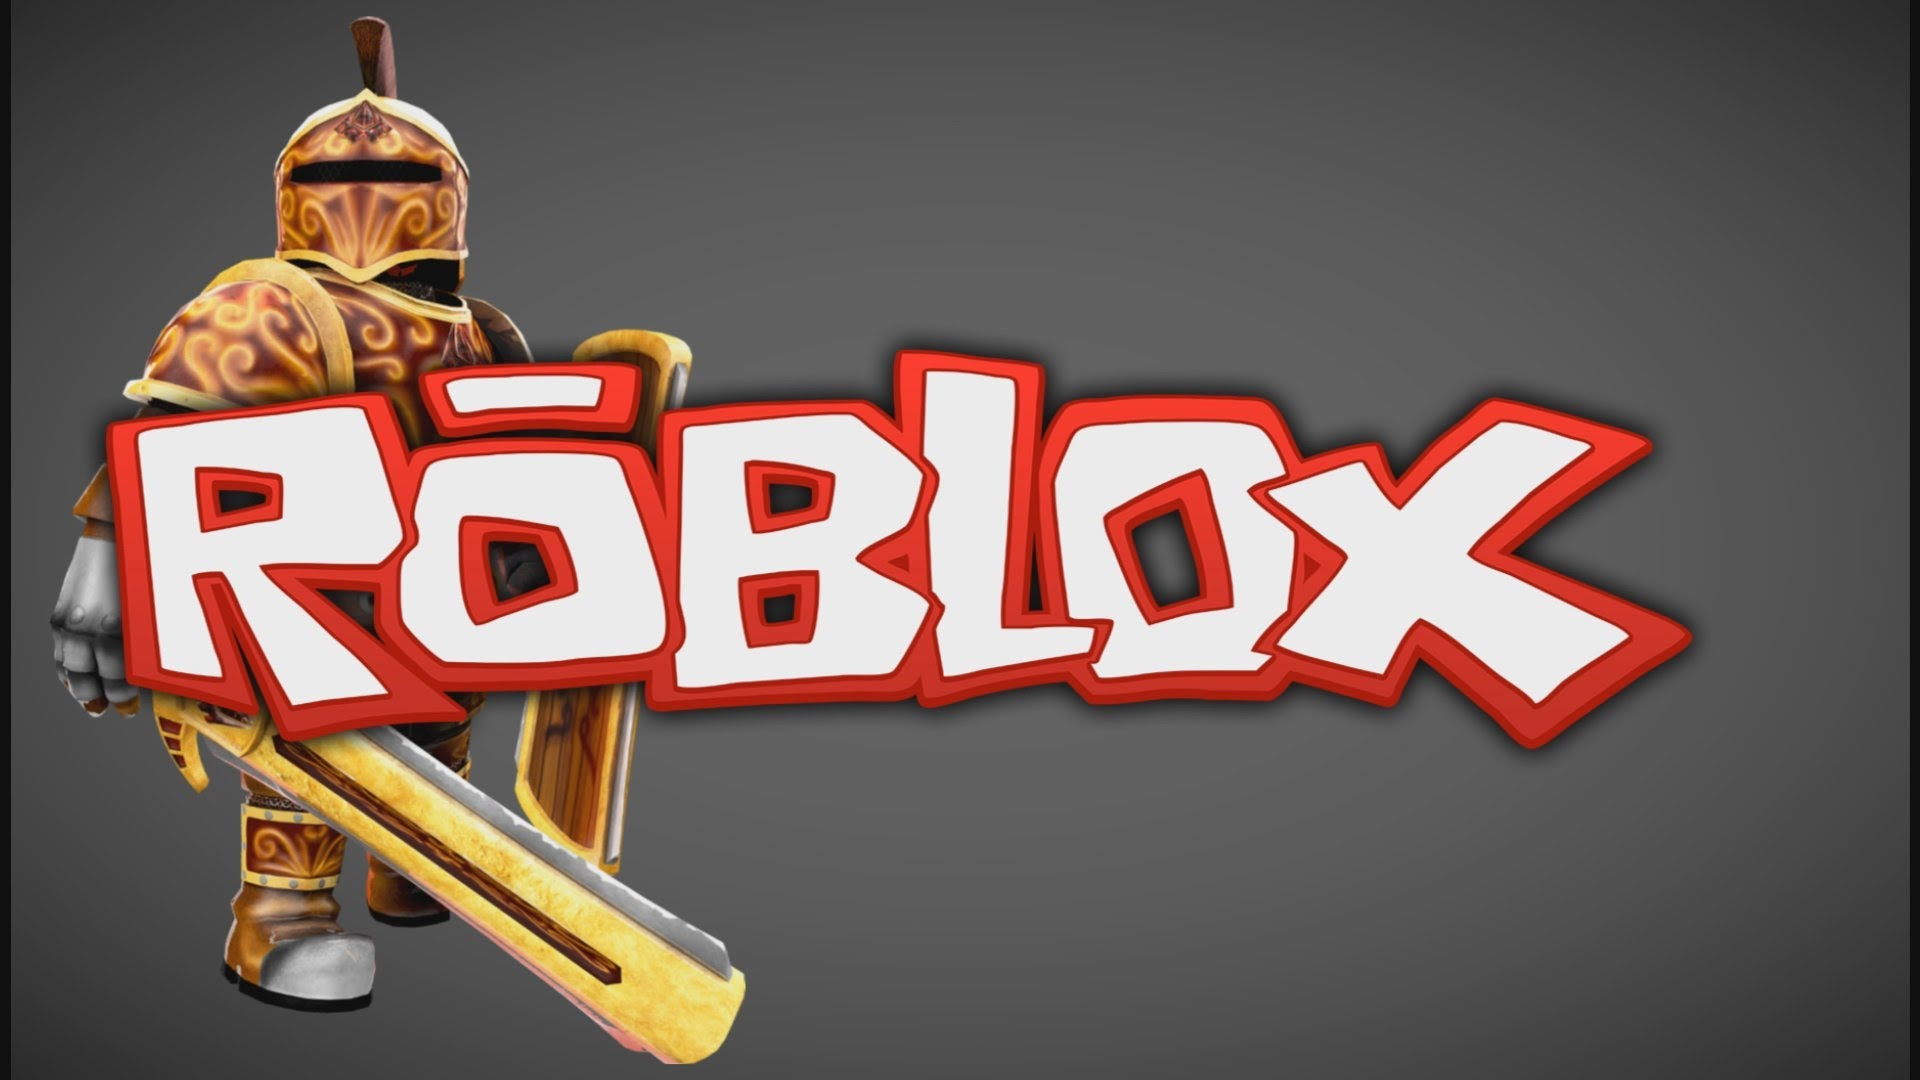 Roblox Hd Wallpaper posted by Sarah Peltier